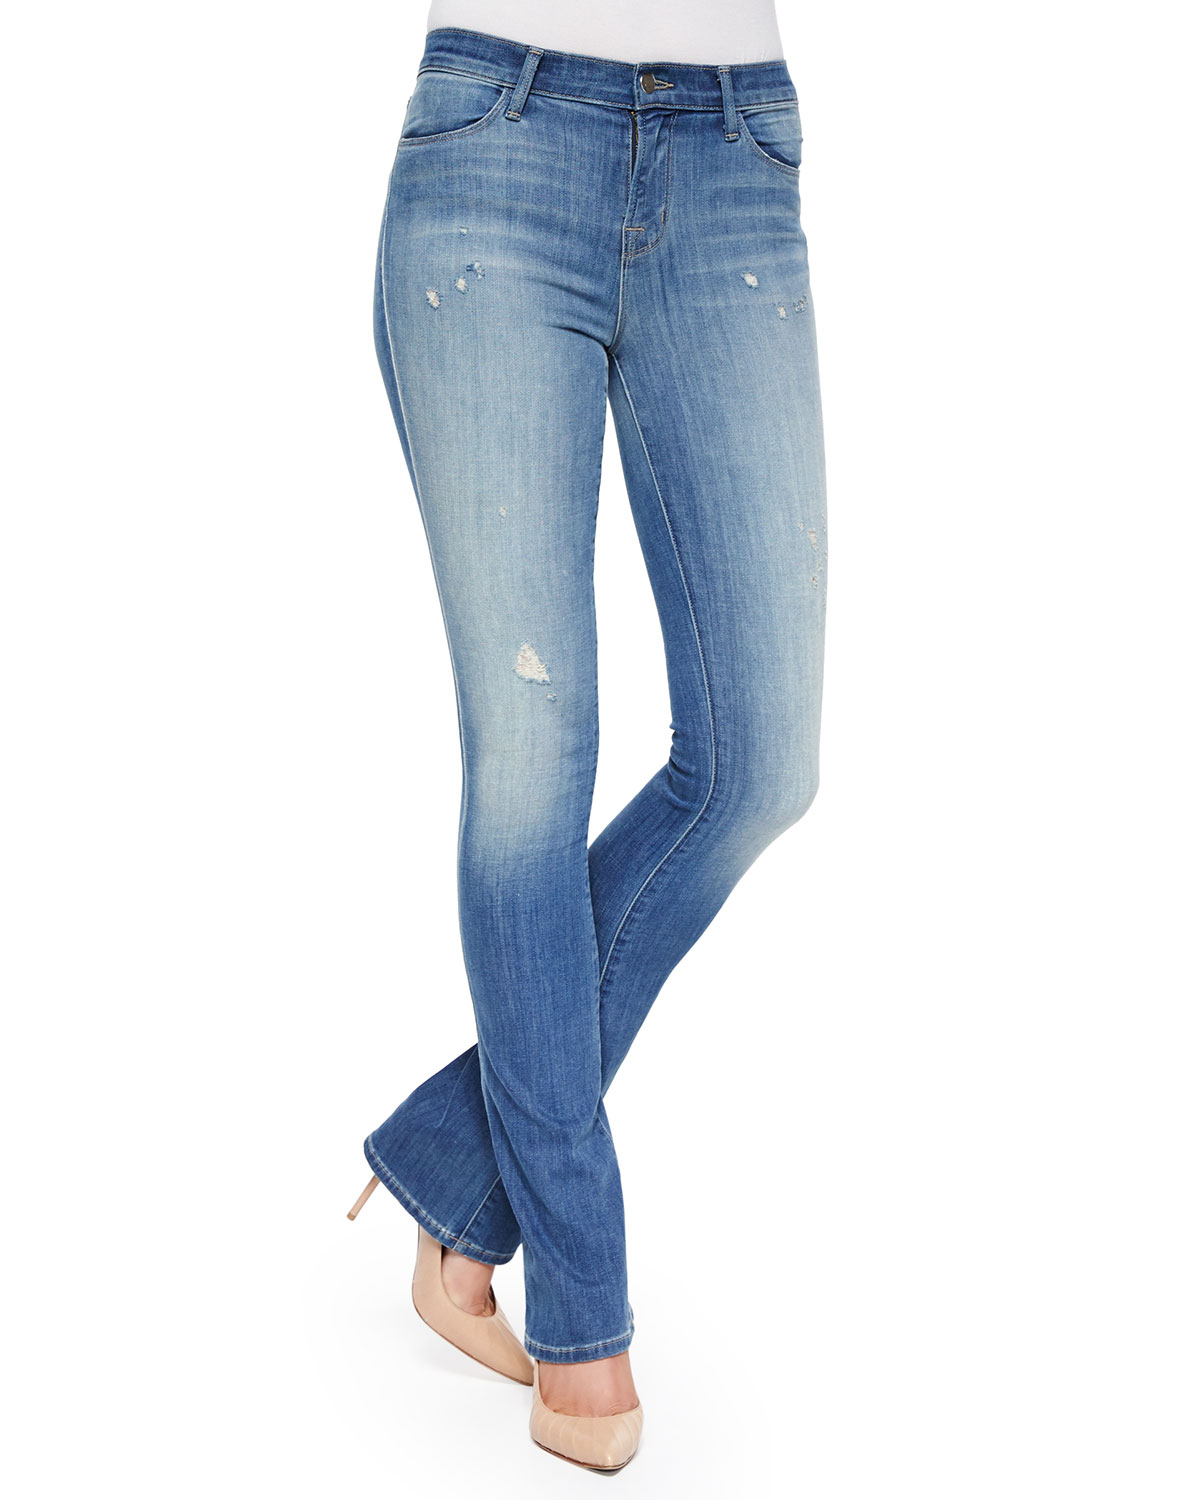 J brand Remy Faded Boot-cut Jeans in Blue | Lyst